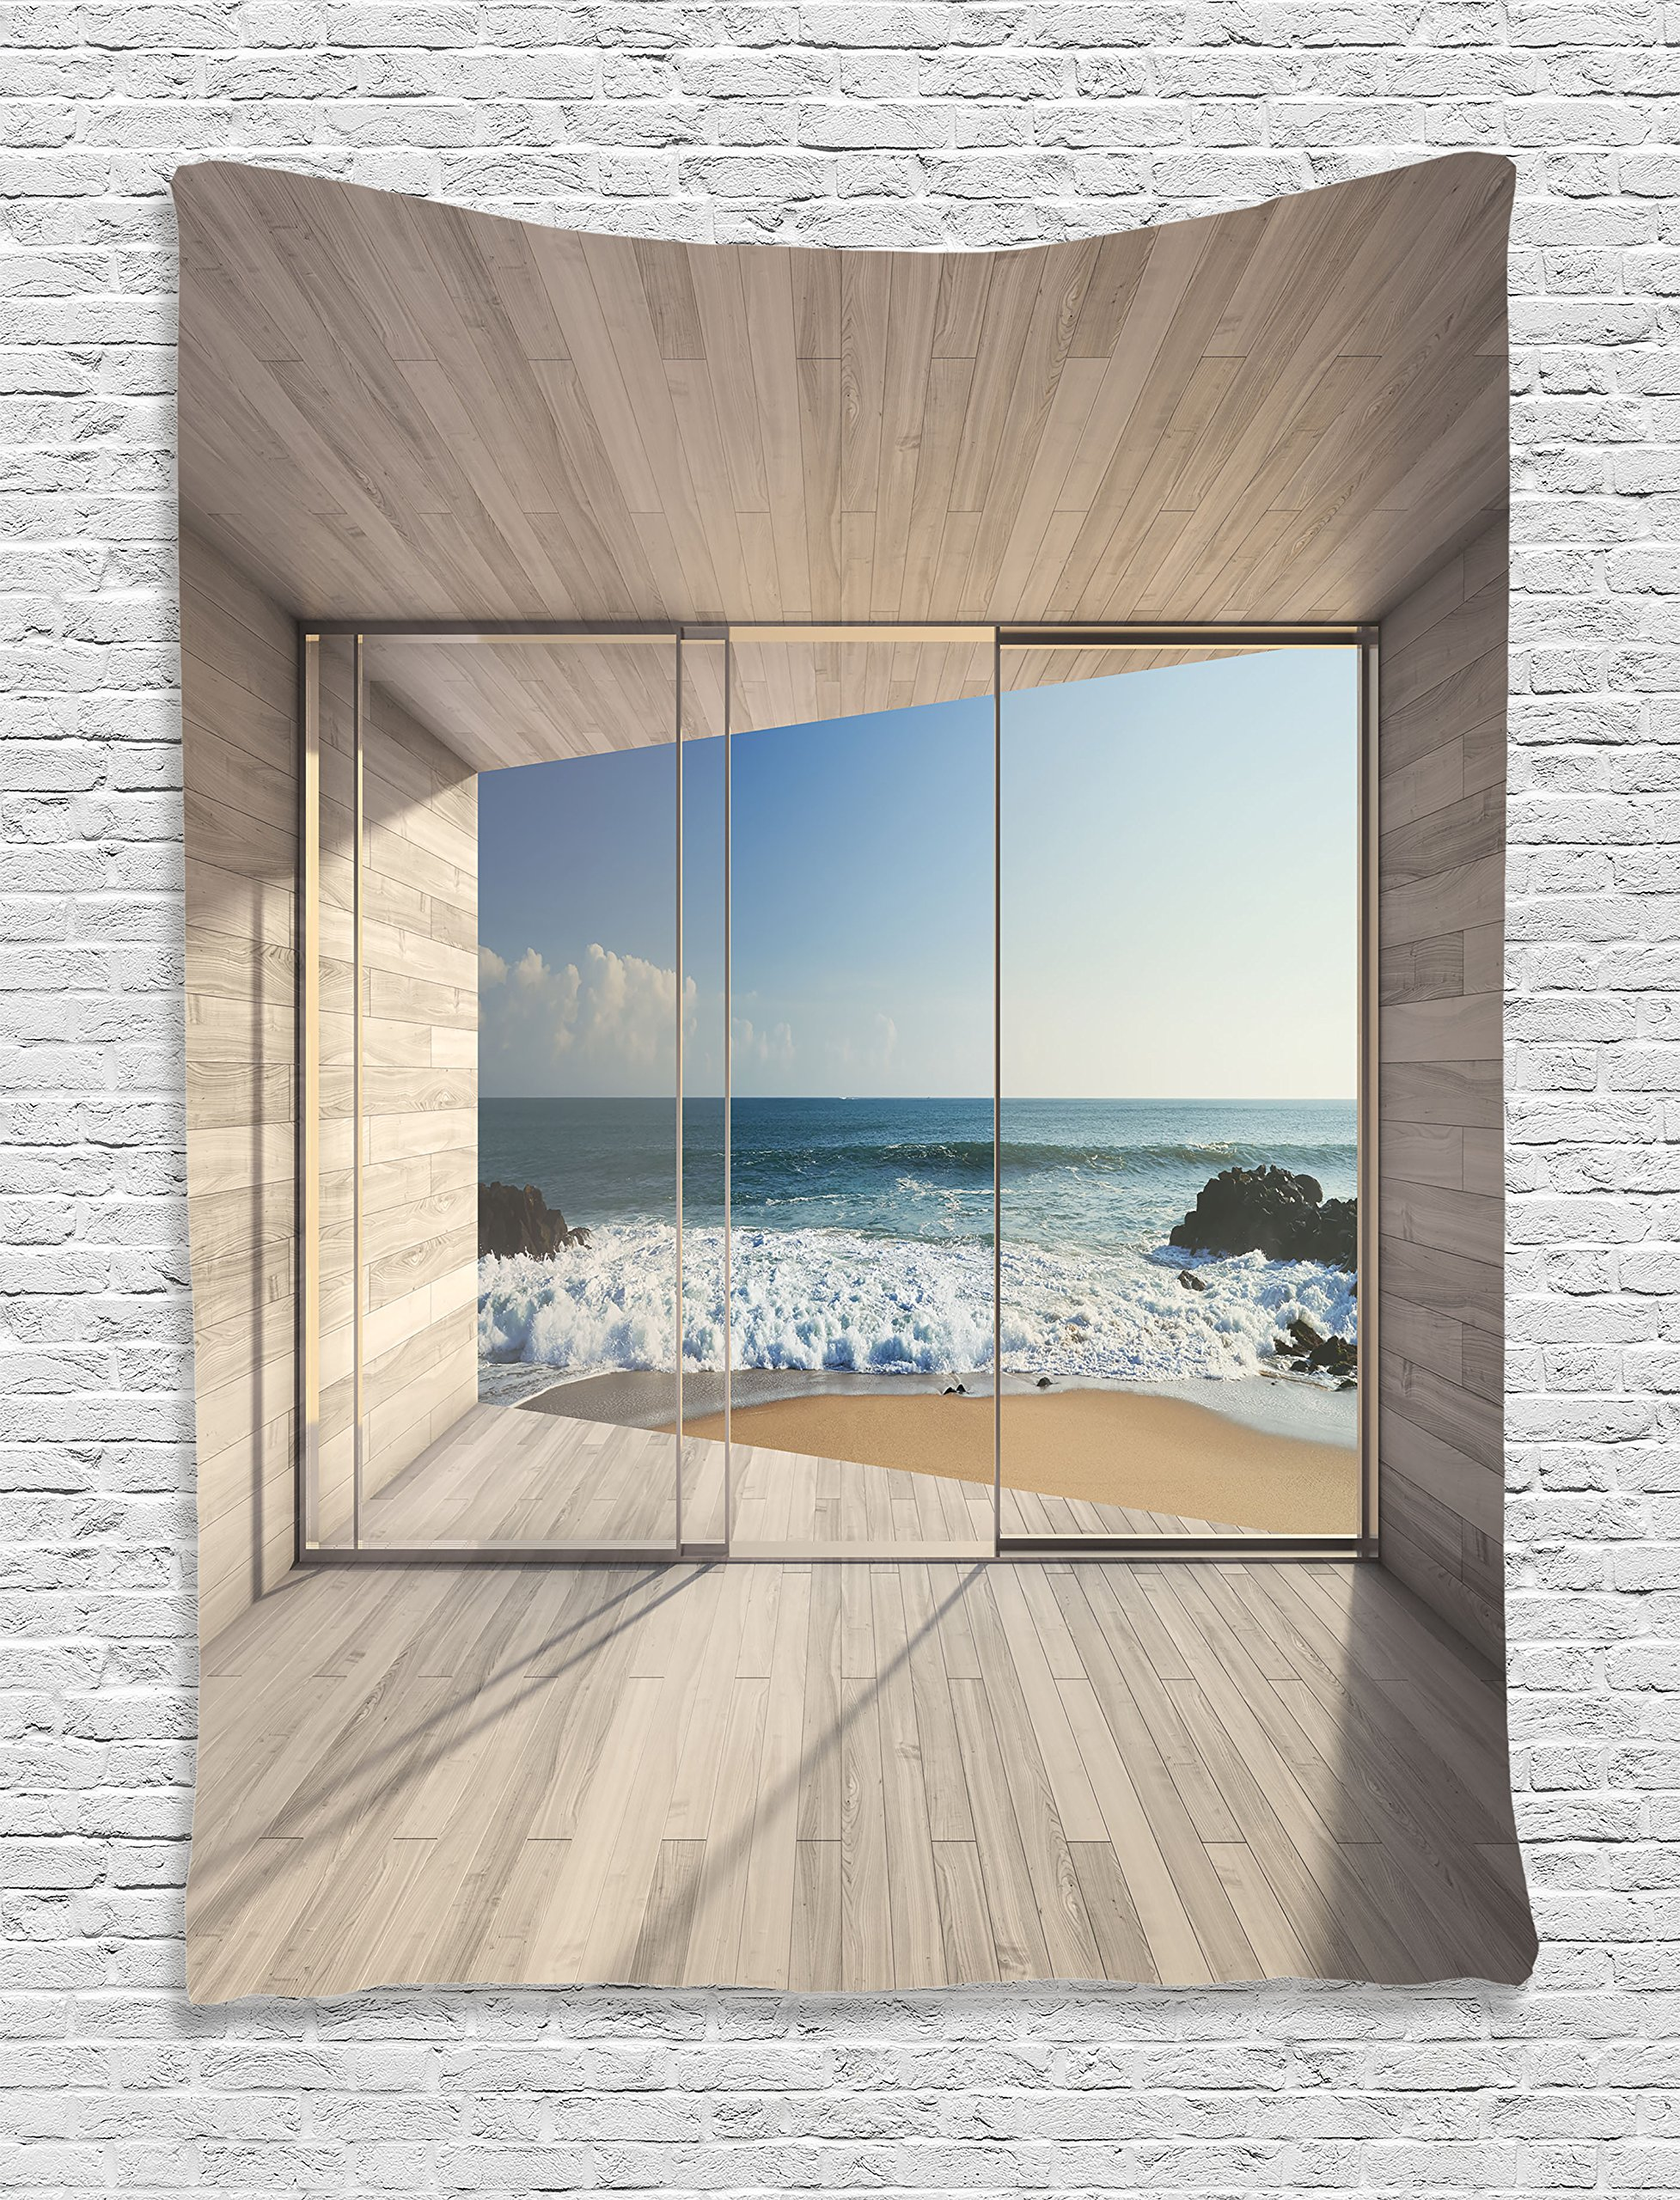 Ambesonne House Decor Collection, Empty Modern Lounge Area with Large Window and View of Sea Waves Rocks Image Pattern, Bedroom Living Room Dorm Wall Hanging Tapestry, Tan Blue